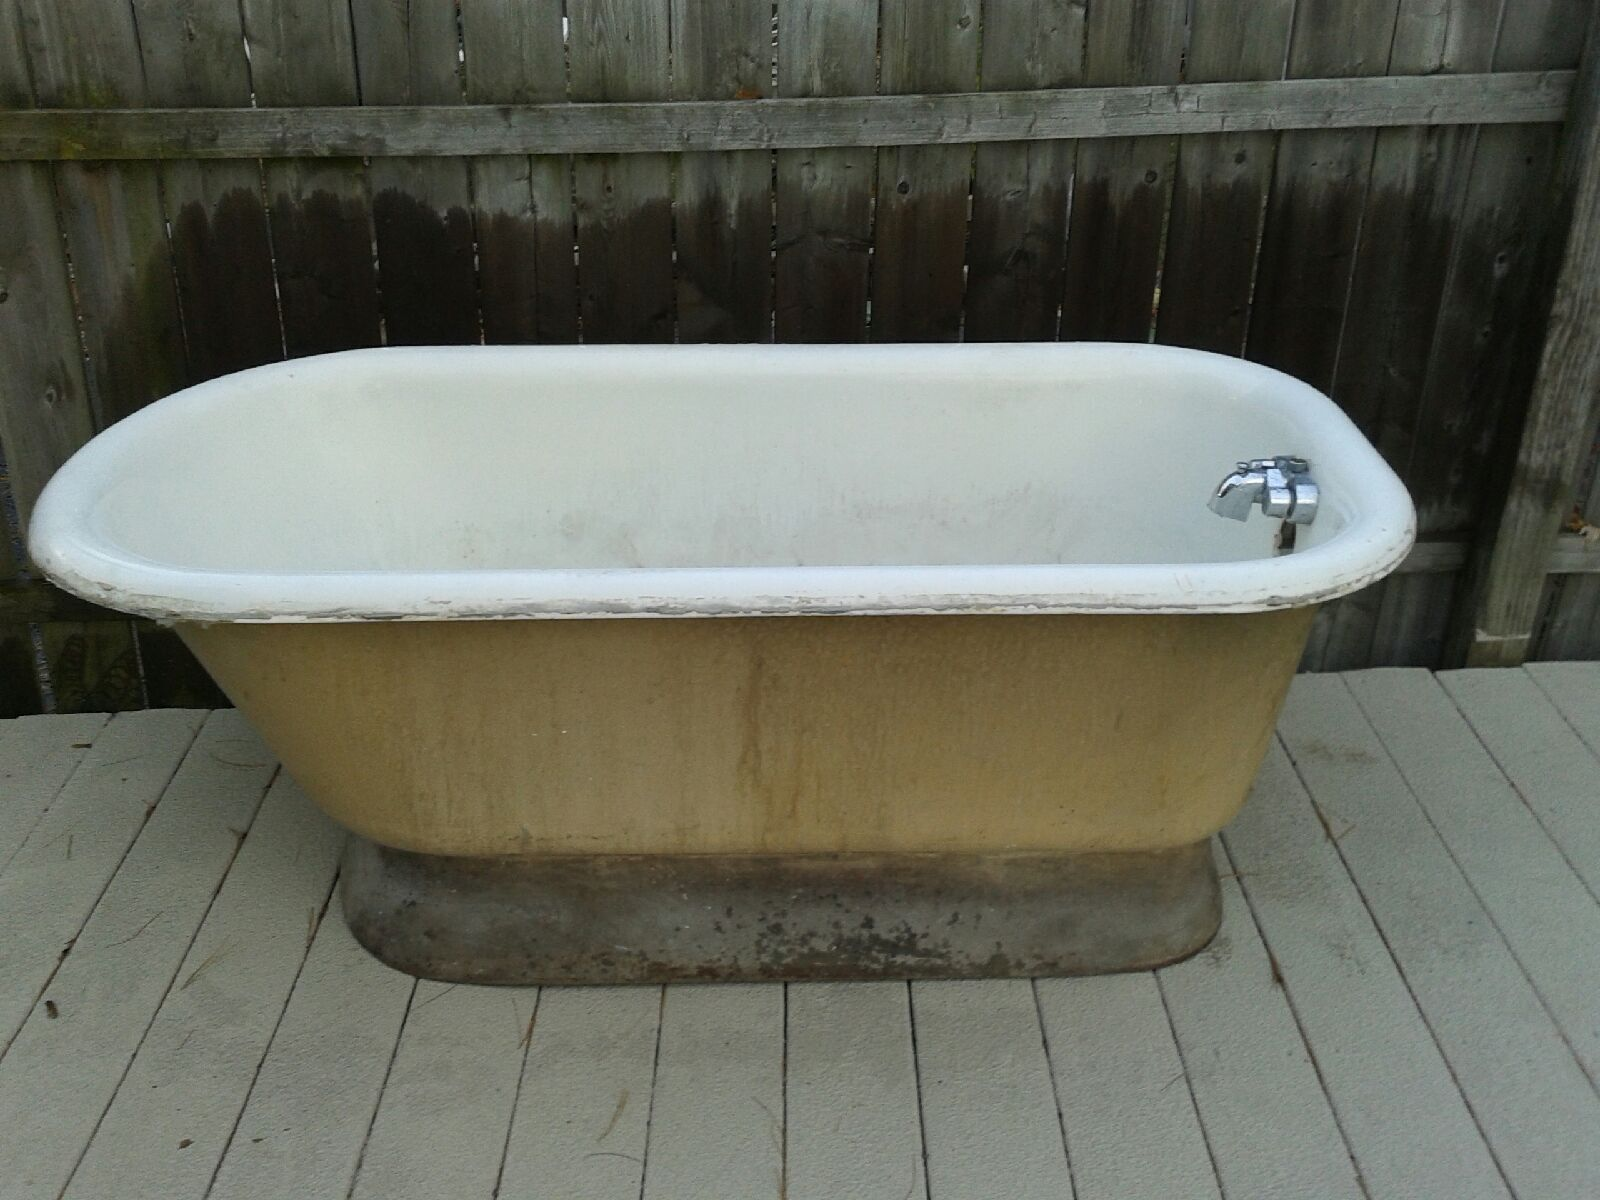 Lovely Cleveland Ohio Vintage Pedestal Bathtub For Sale 3.